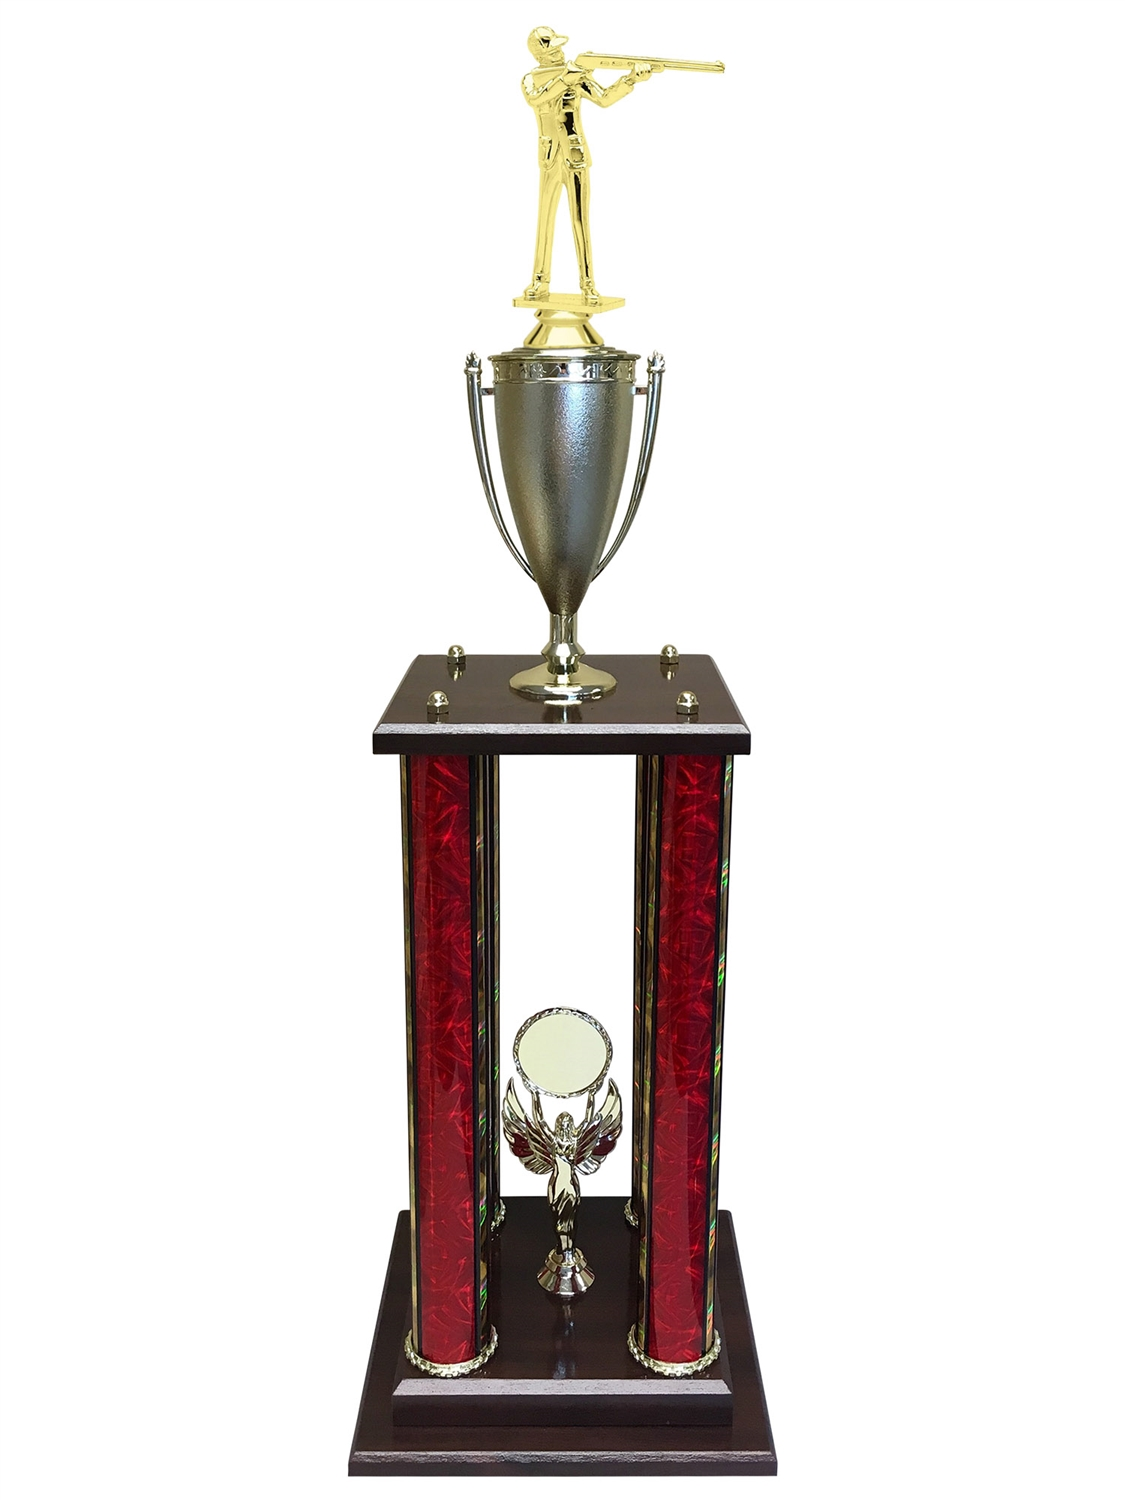 Trap Skeet Shooting Trophy Available in 11 colors & 3 sizes